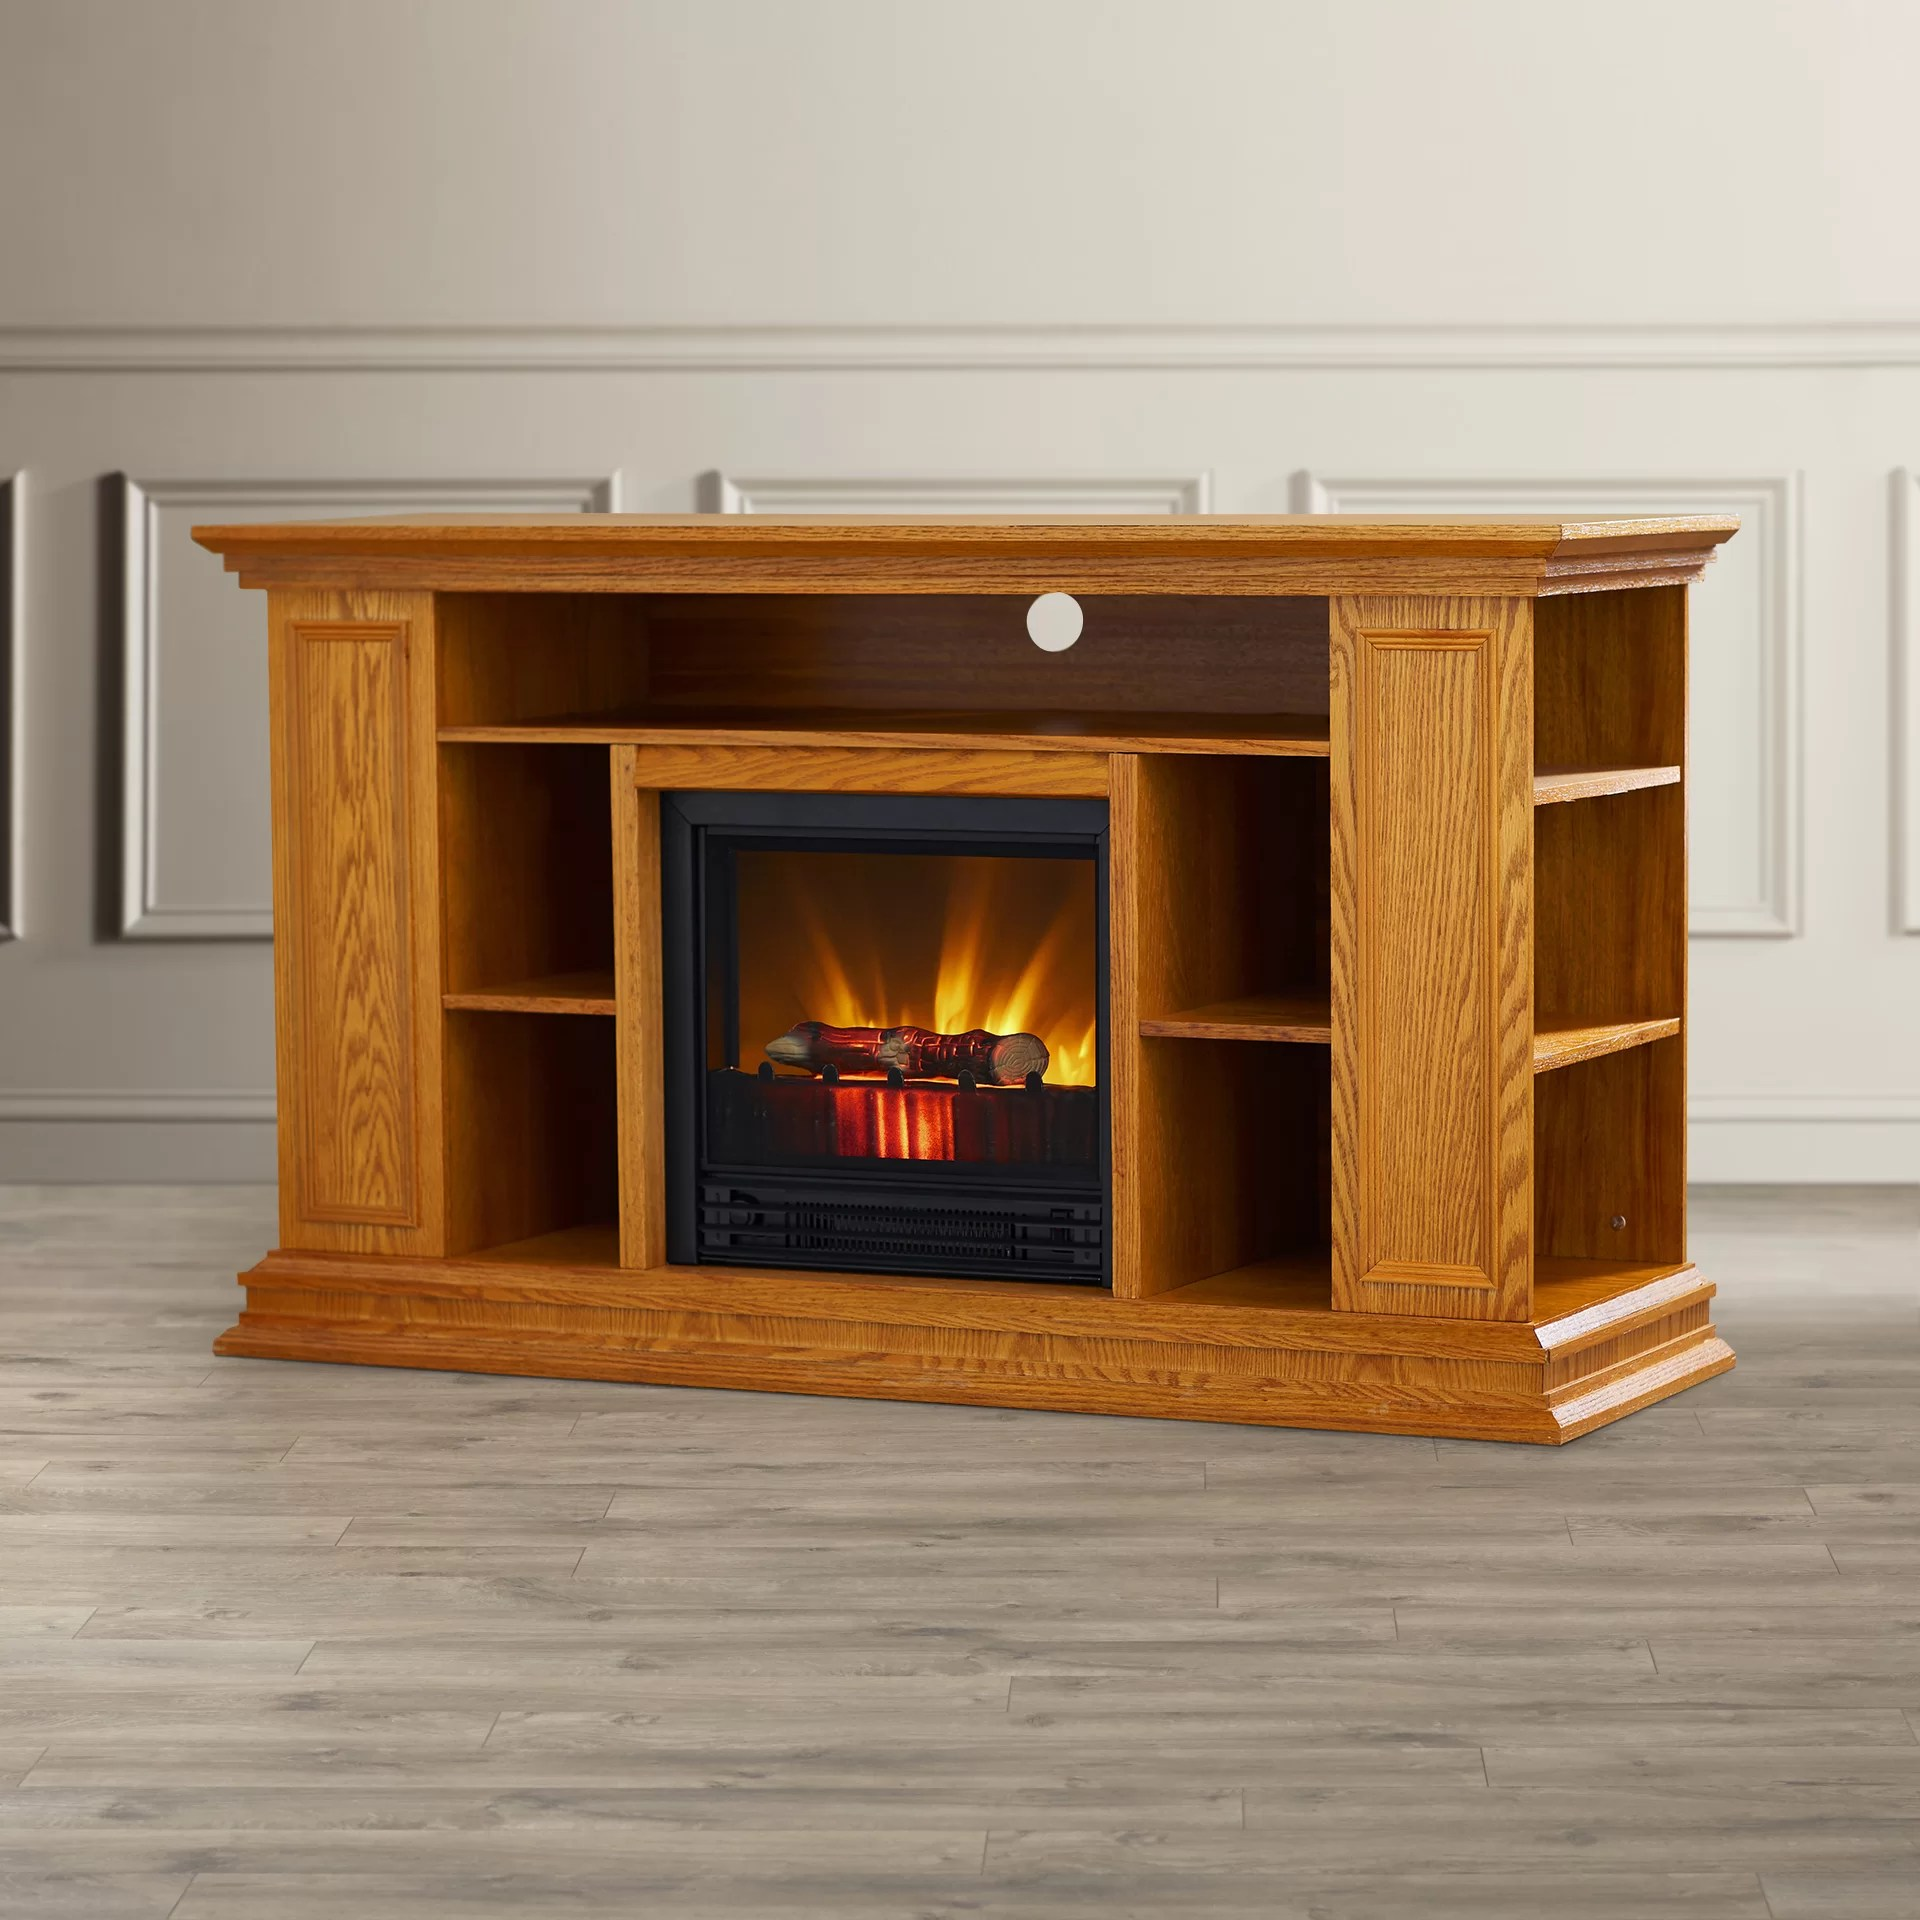 Darby Home Co Portland 50 TV Stand with Electric Fireplace  Reviews  Wayfair